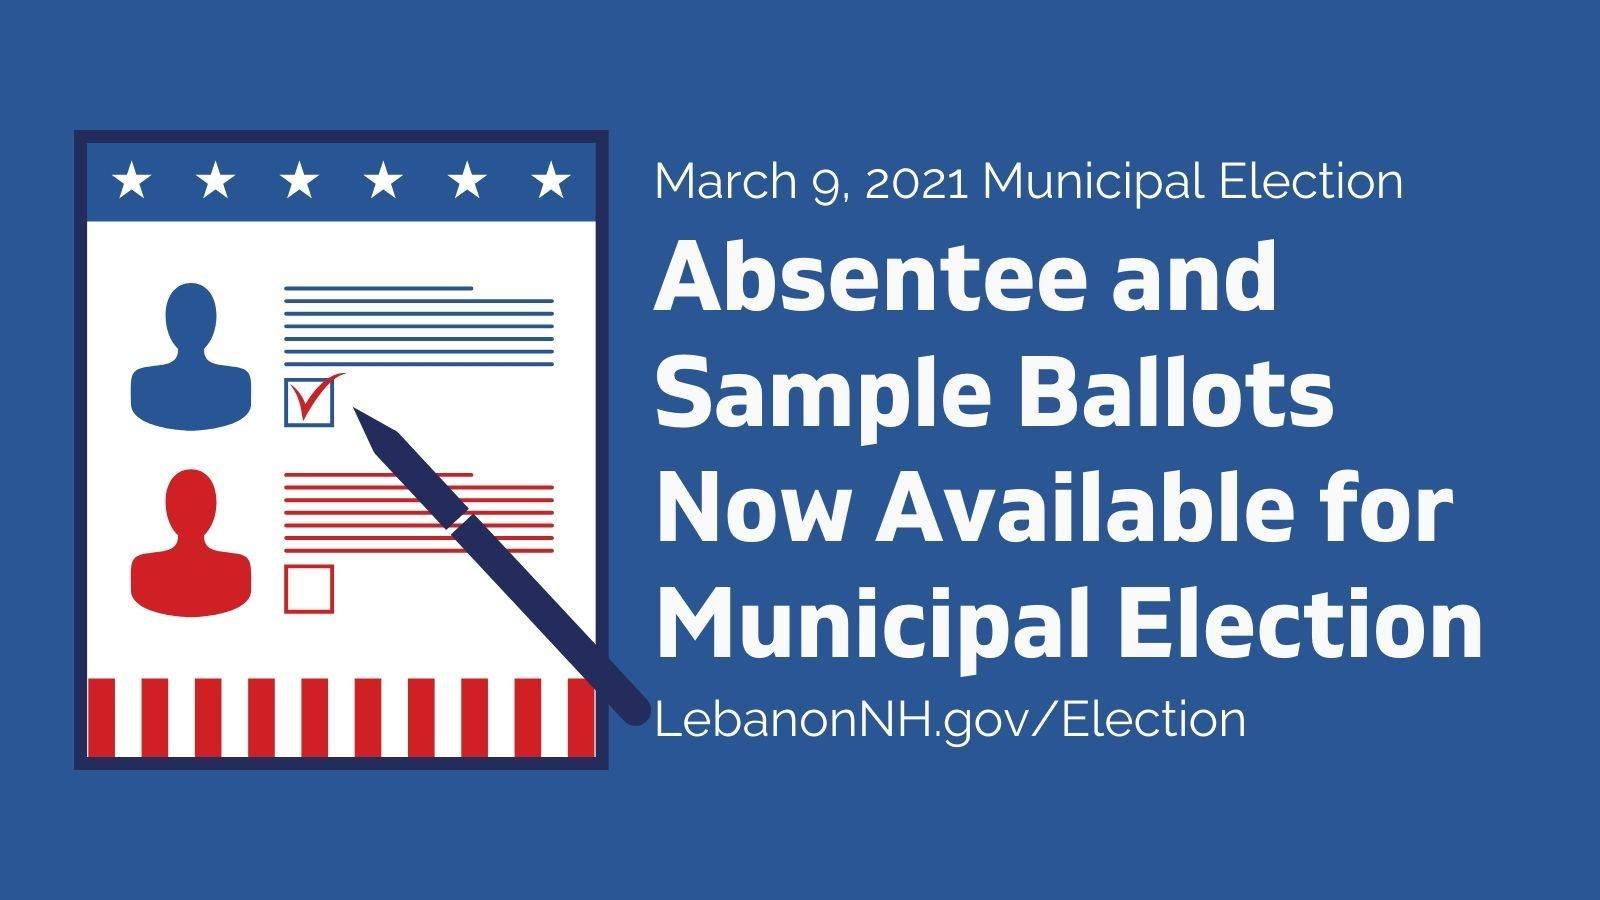 Absentee and Sample Ballots